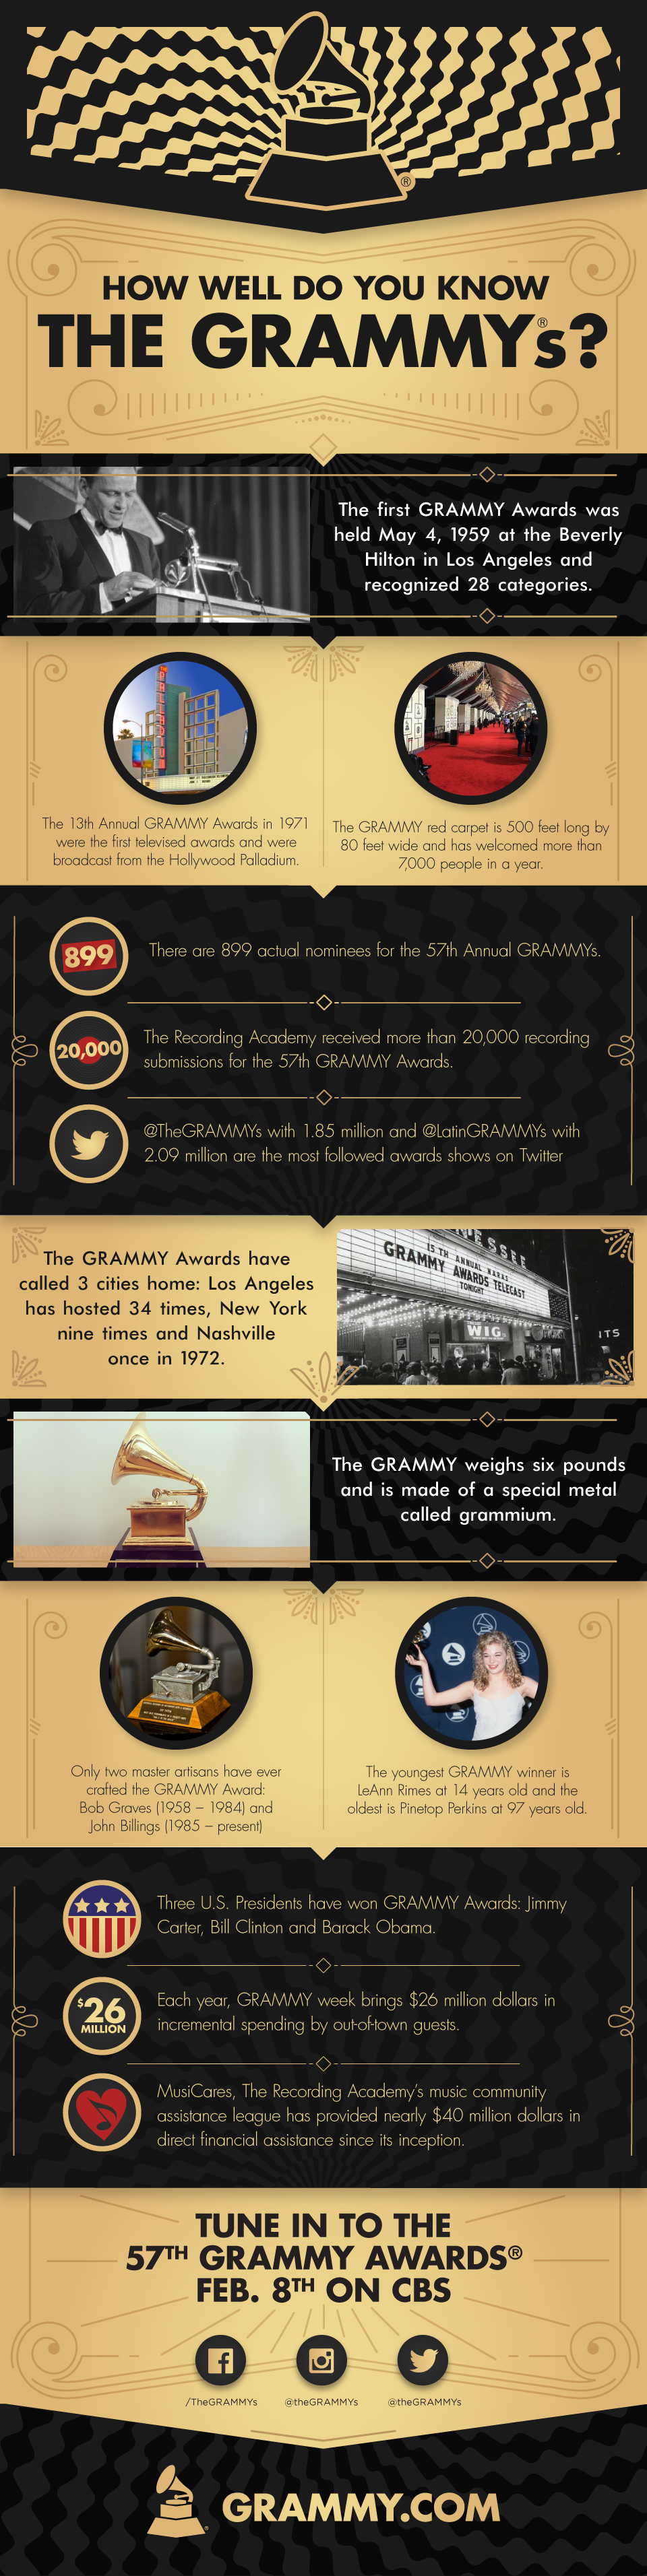 GRAMMY Fun Facts